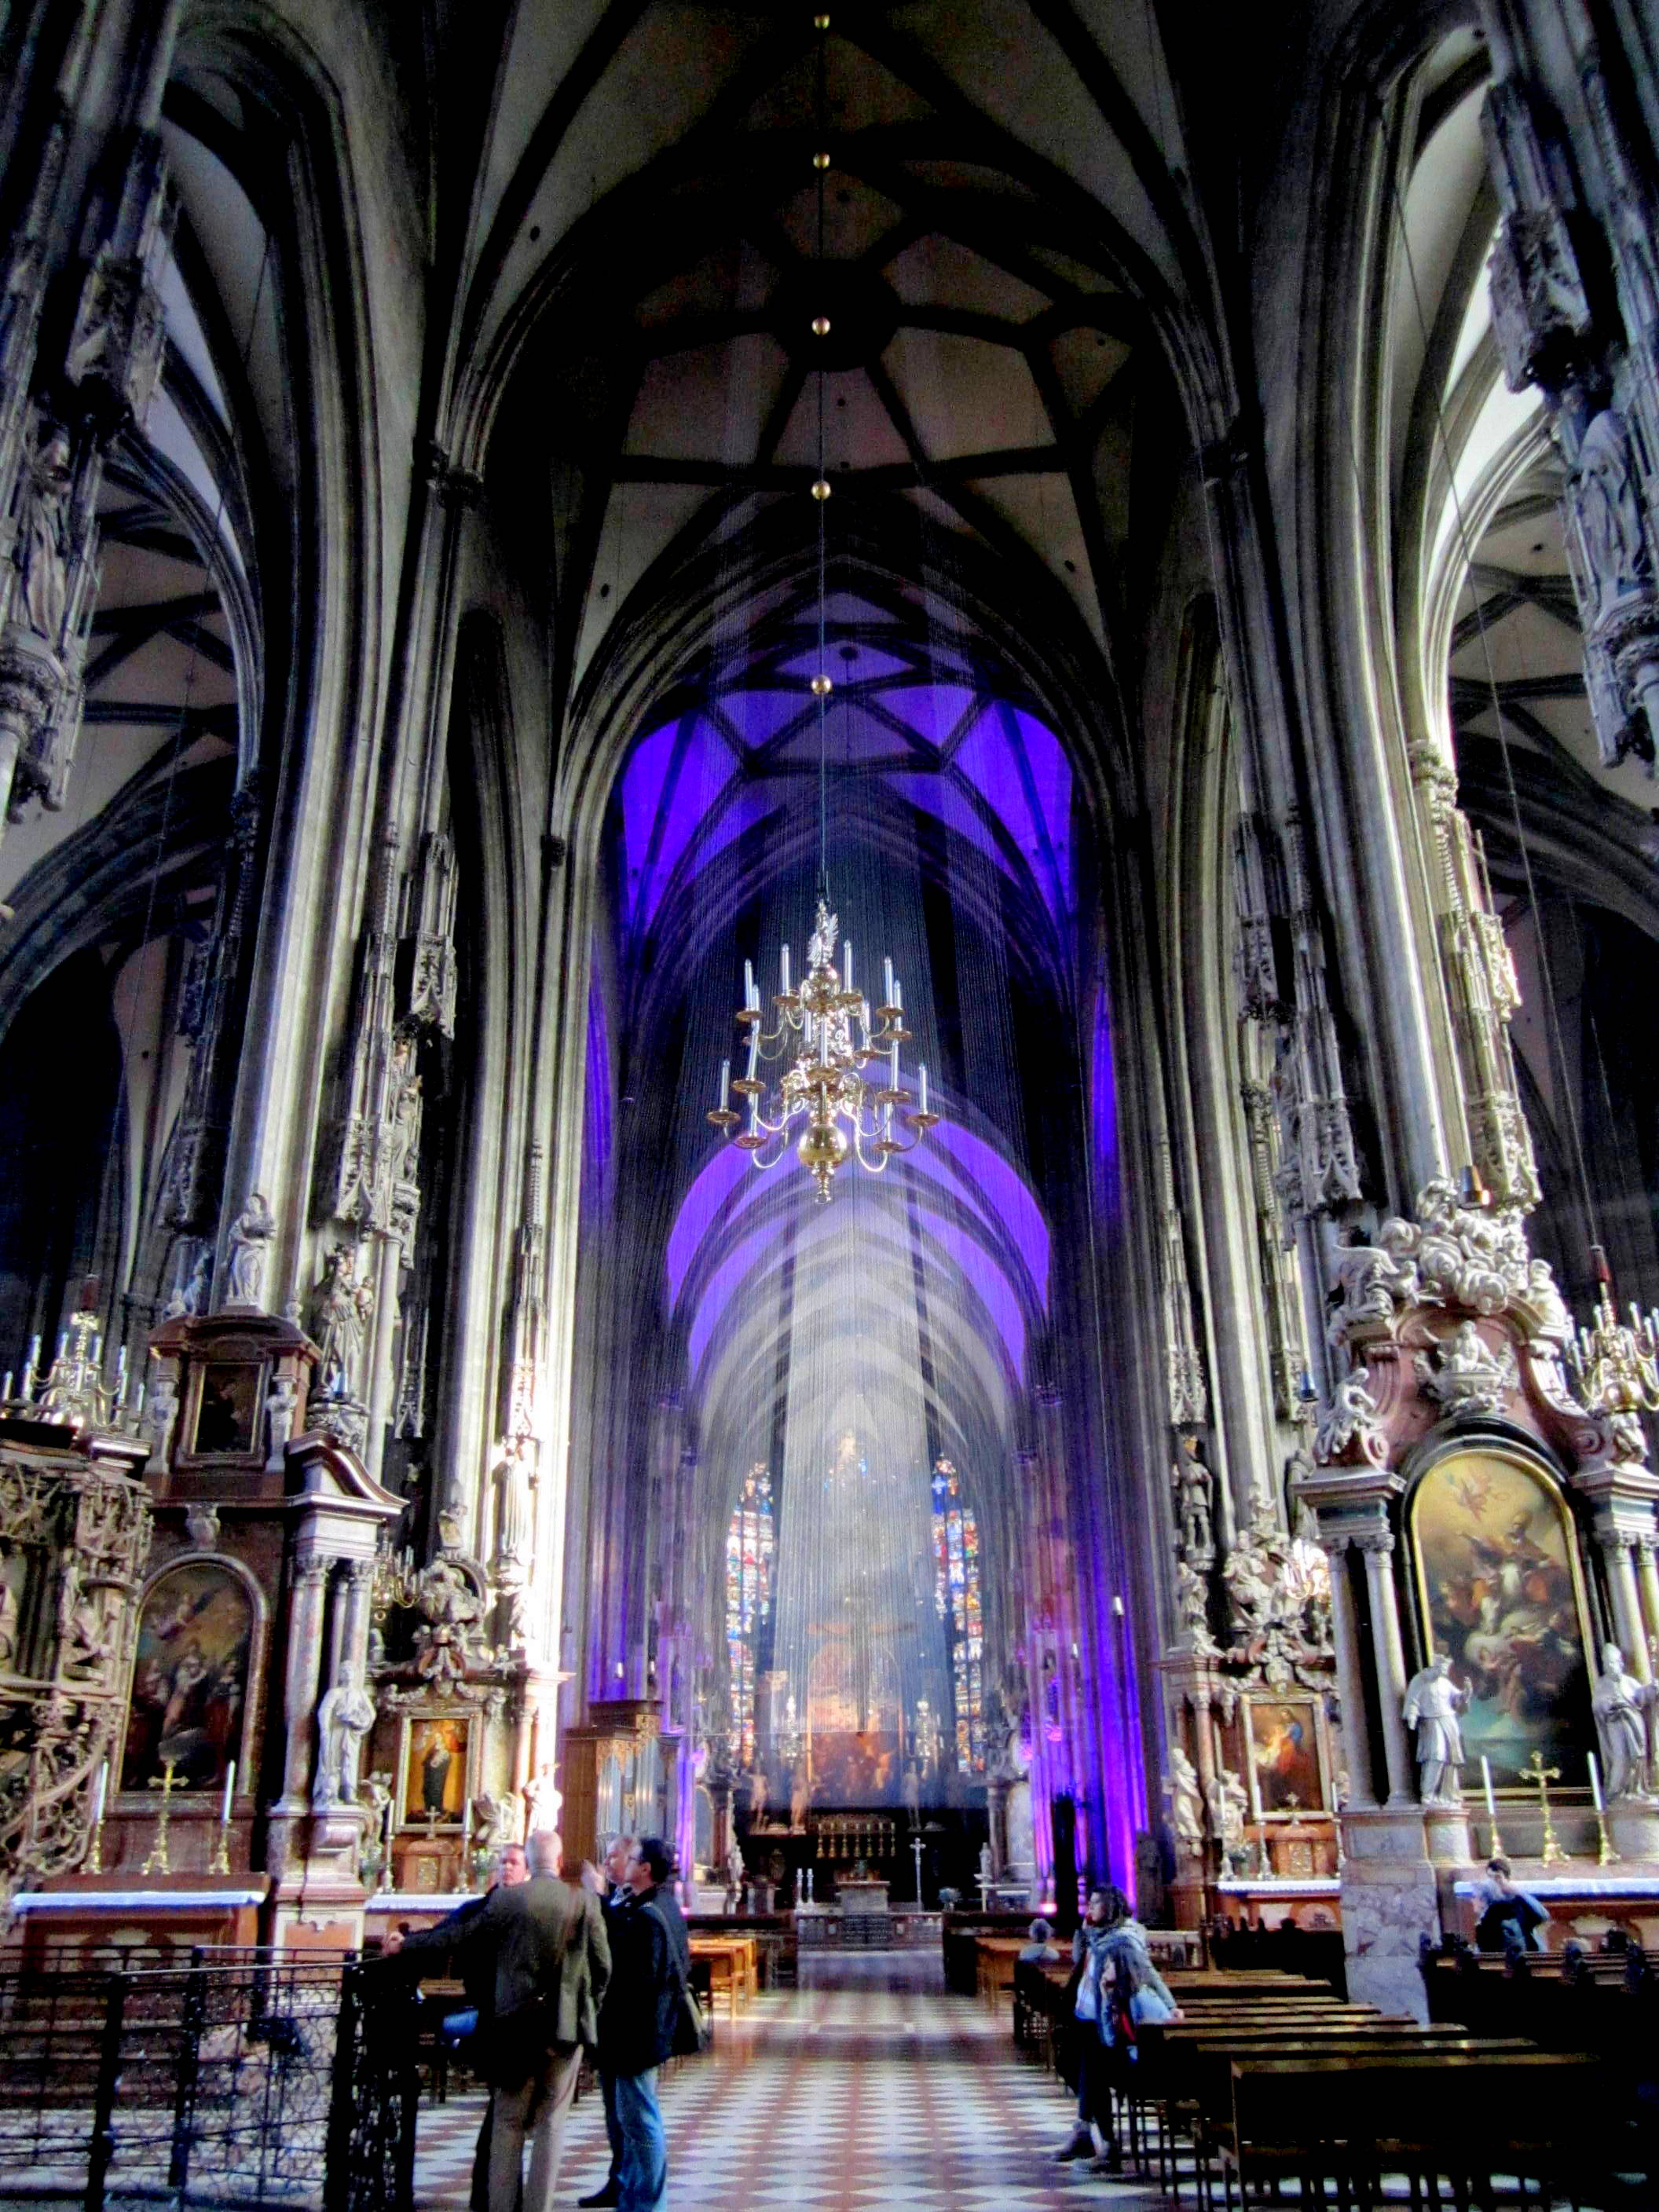 St. Stephen's Cathedral in Vienna Austria